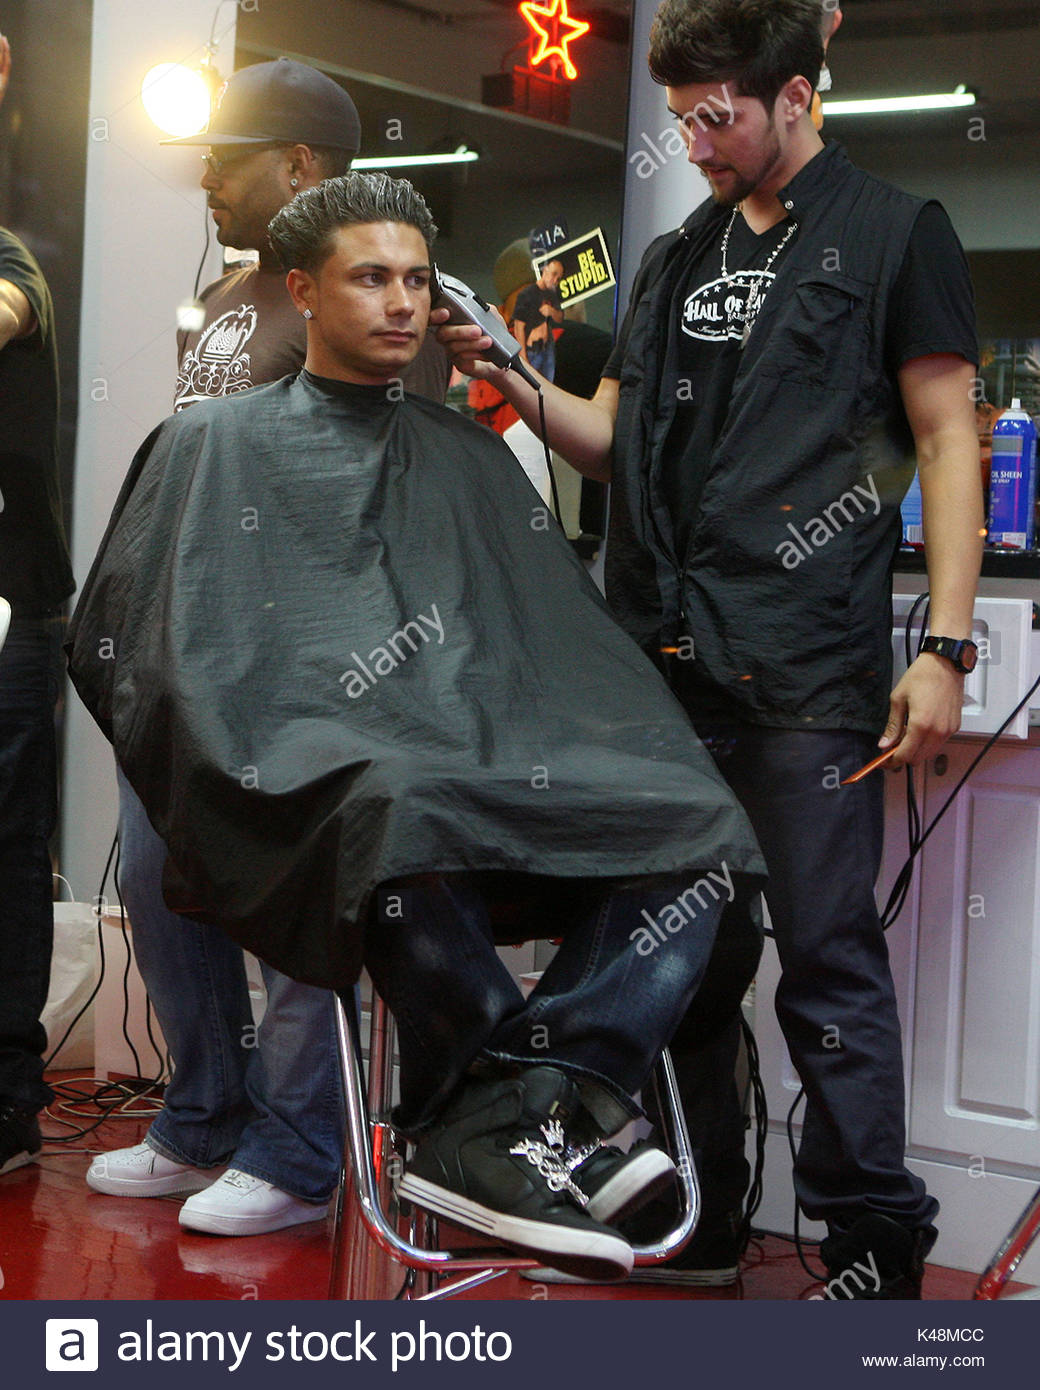 Paul Pauly D Delvecchio The Guys Of The Jersey Shore Cast Get